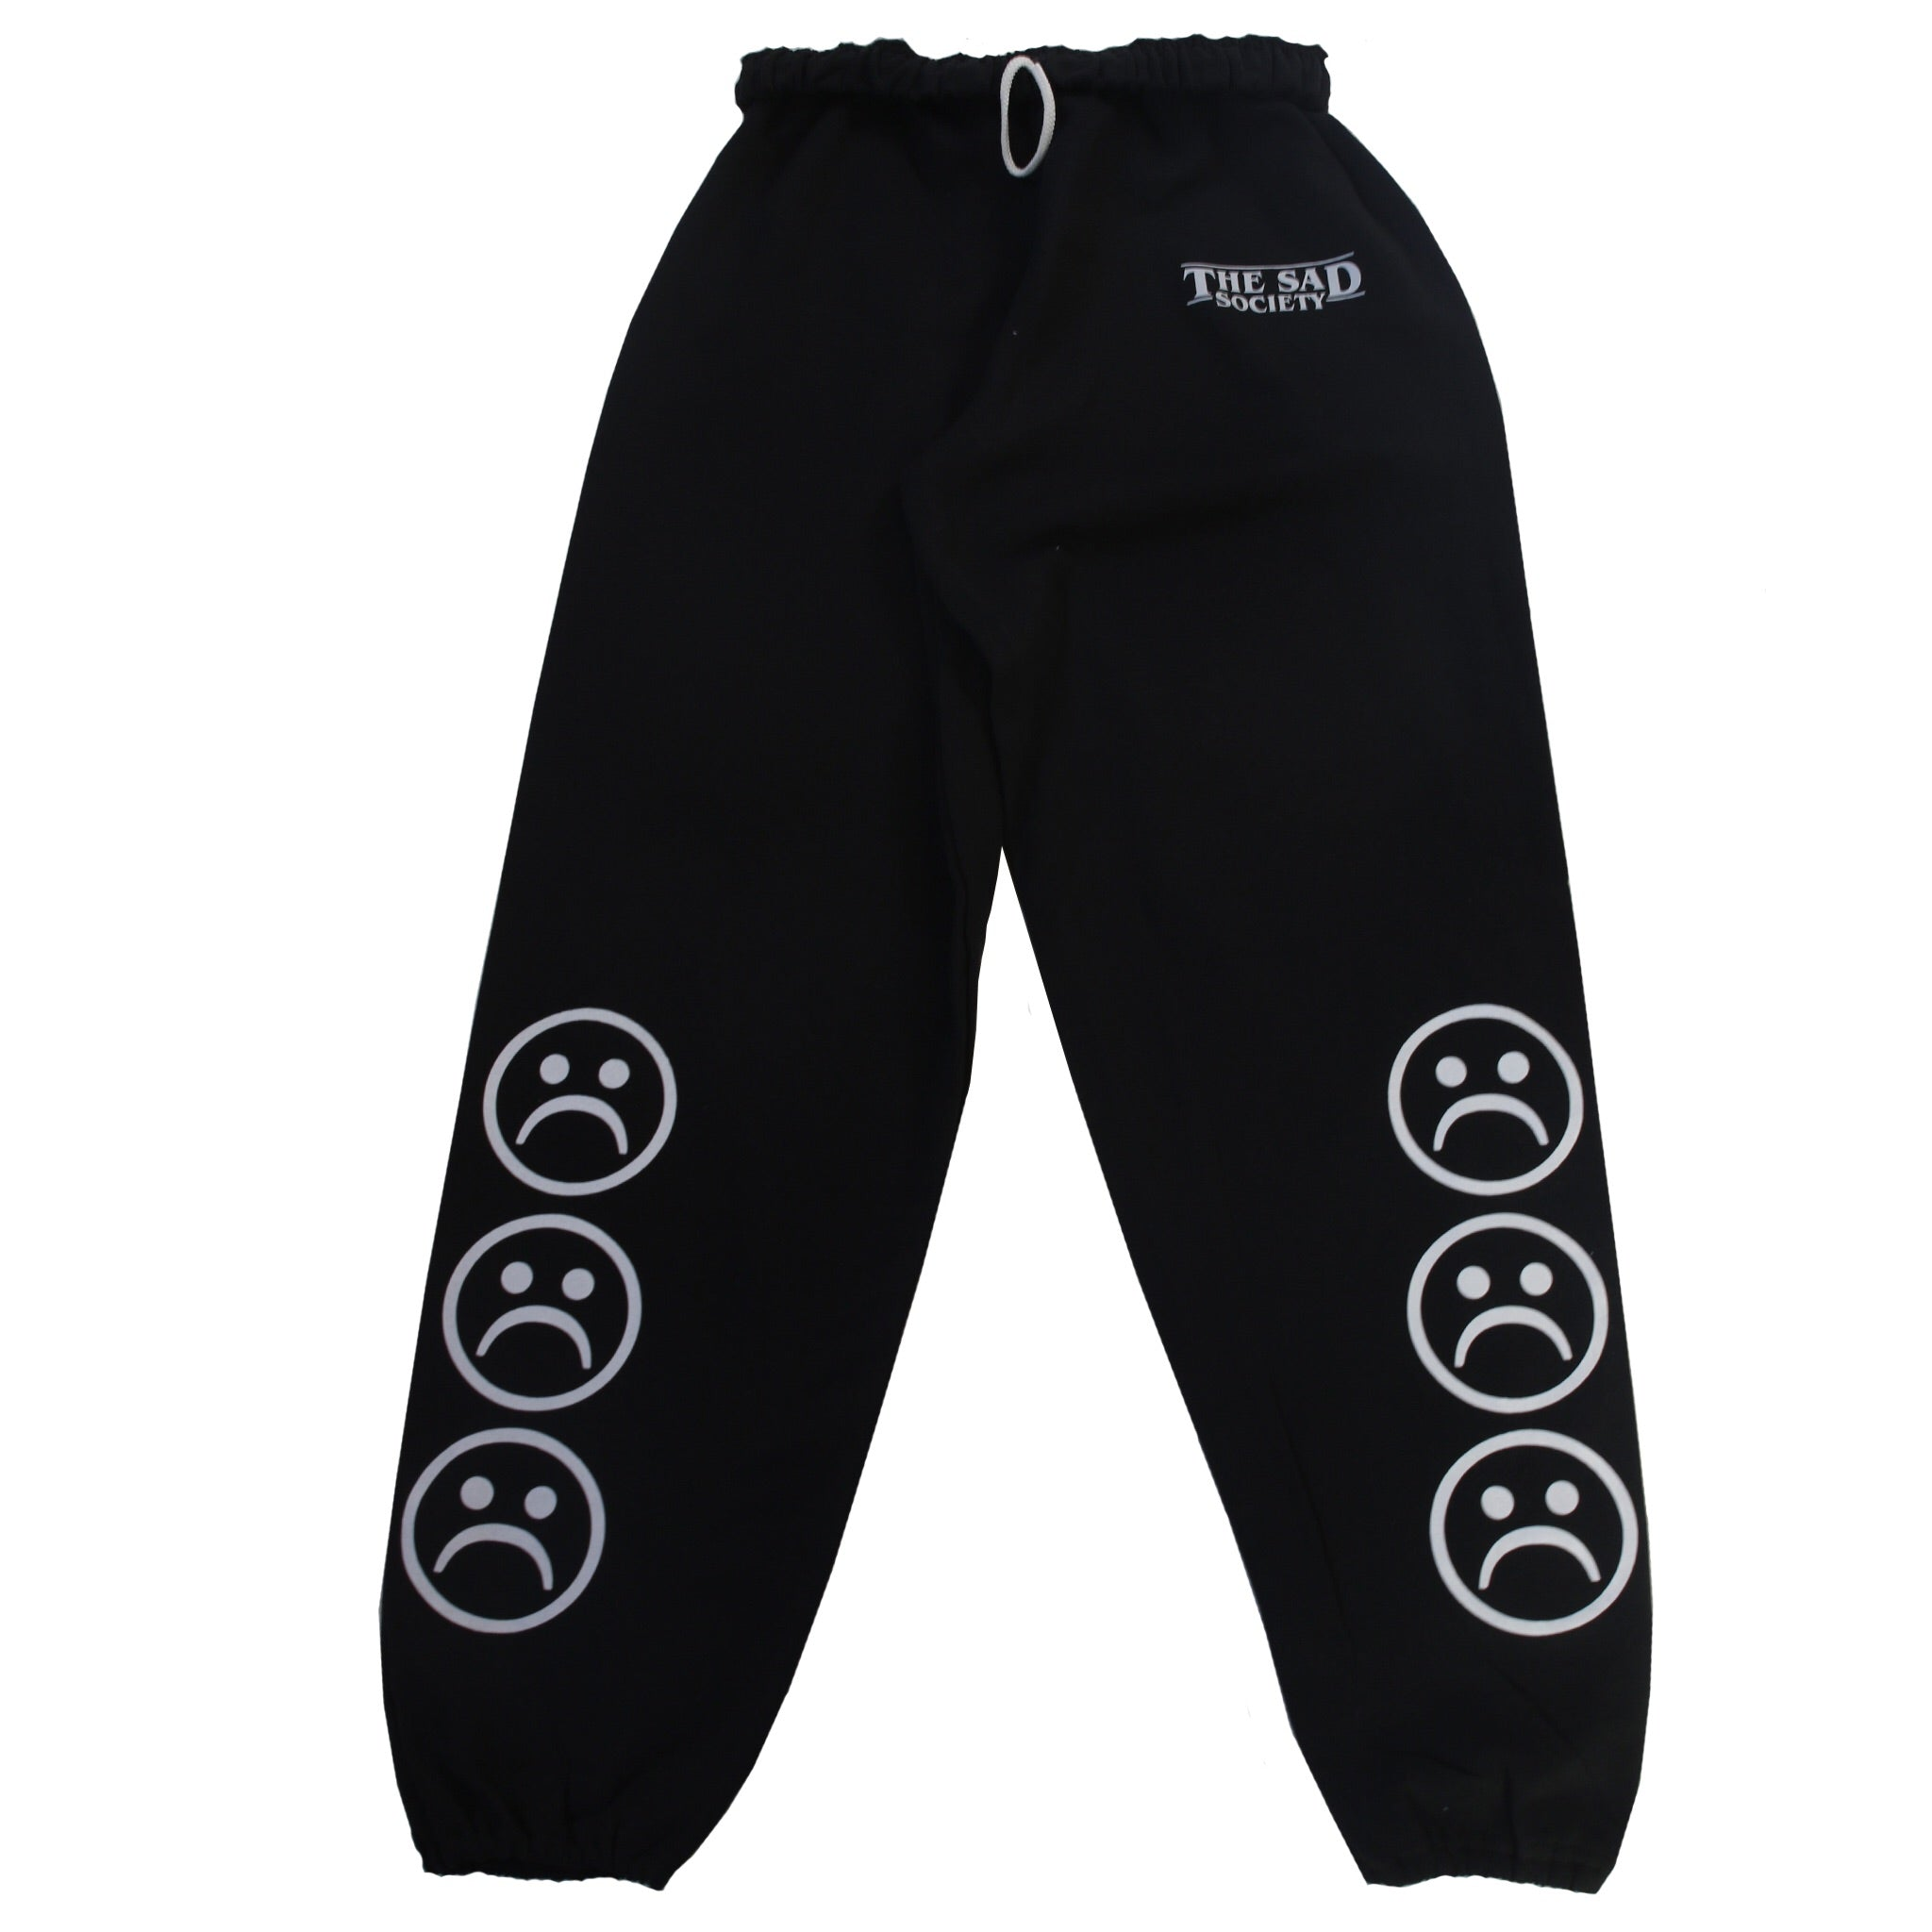 The Sad Society Black SweatPants